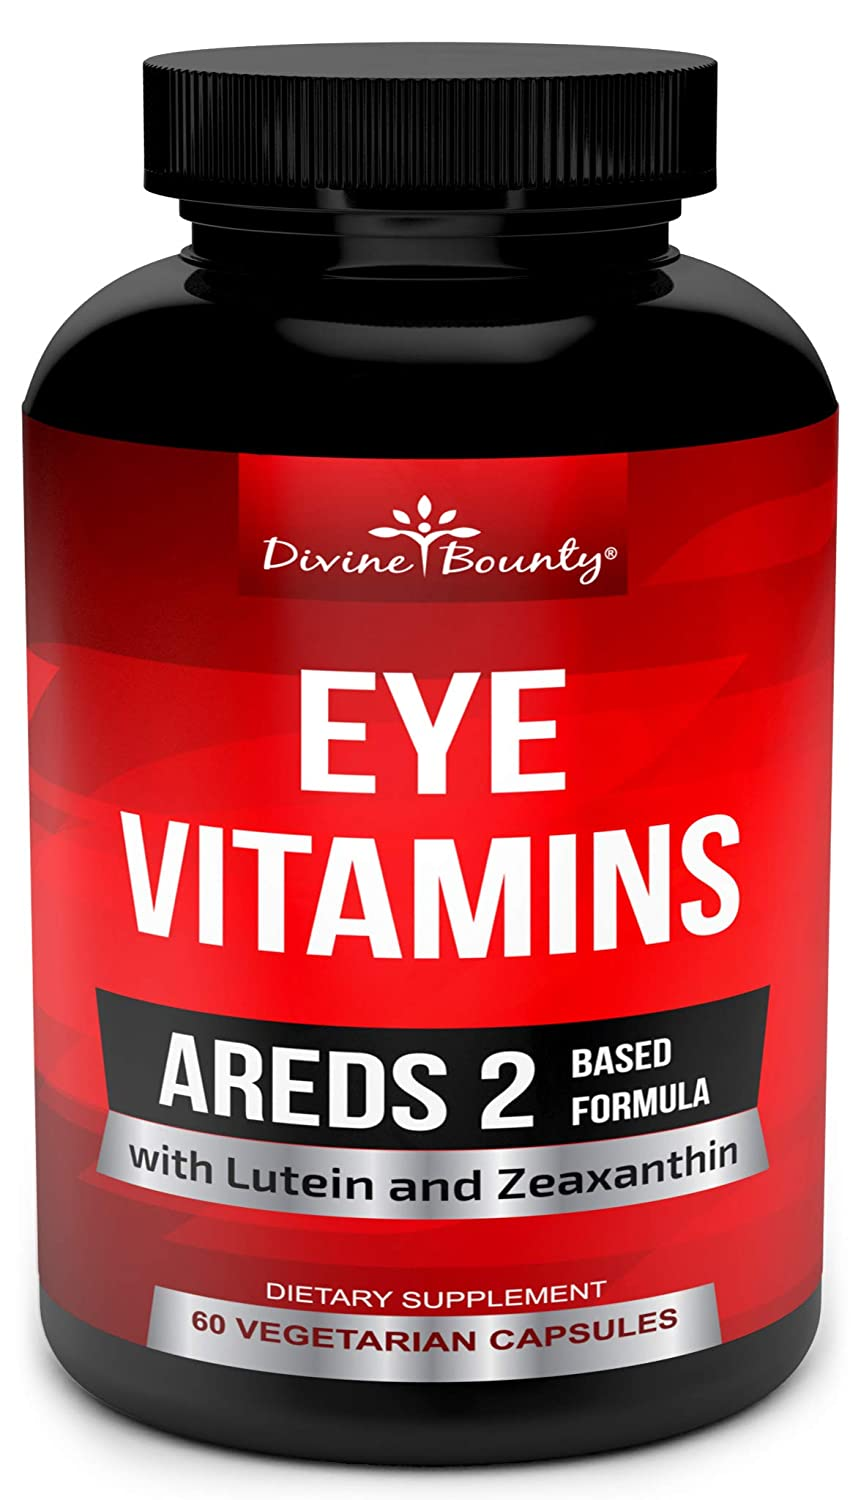 AREDS 2 Eye Vitamins with Lutein and Zeaxanthin Supplements - Clinically Proven for Macular Degeneration, Eye Care, Eye Health - Areds2 Formula for Adults - 60 Vegetarian Capsules